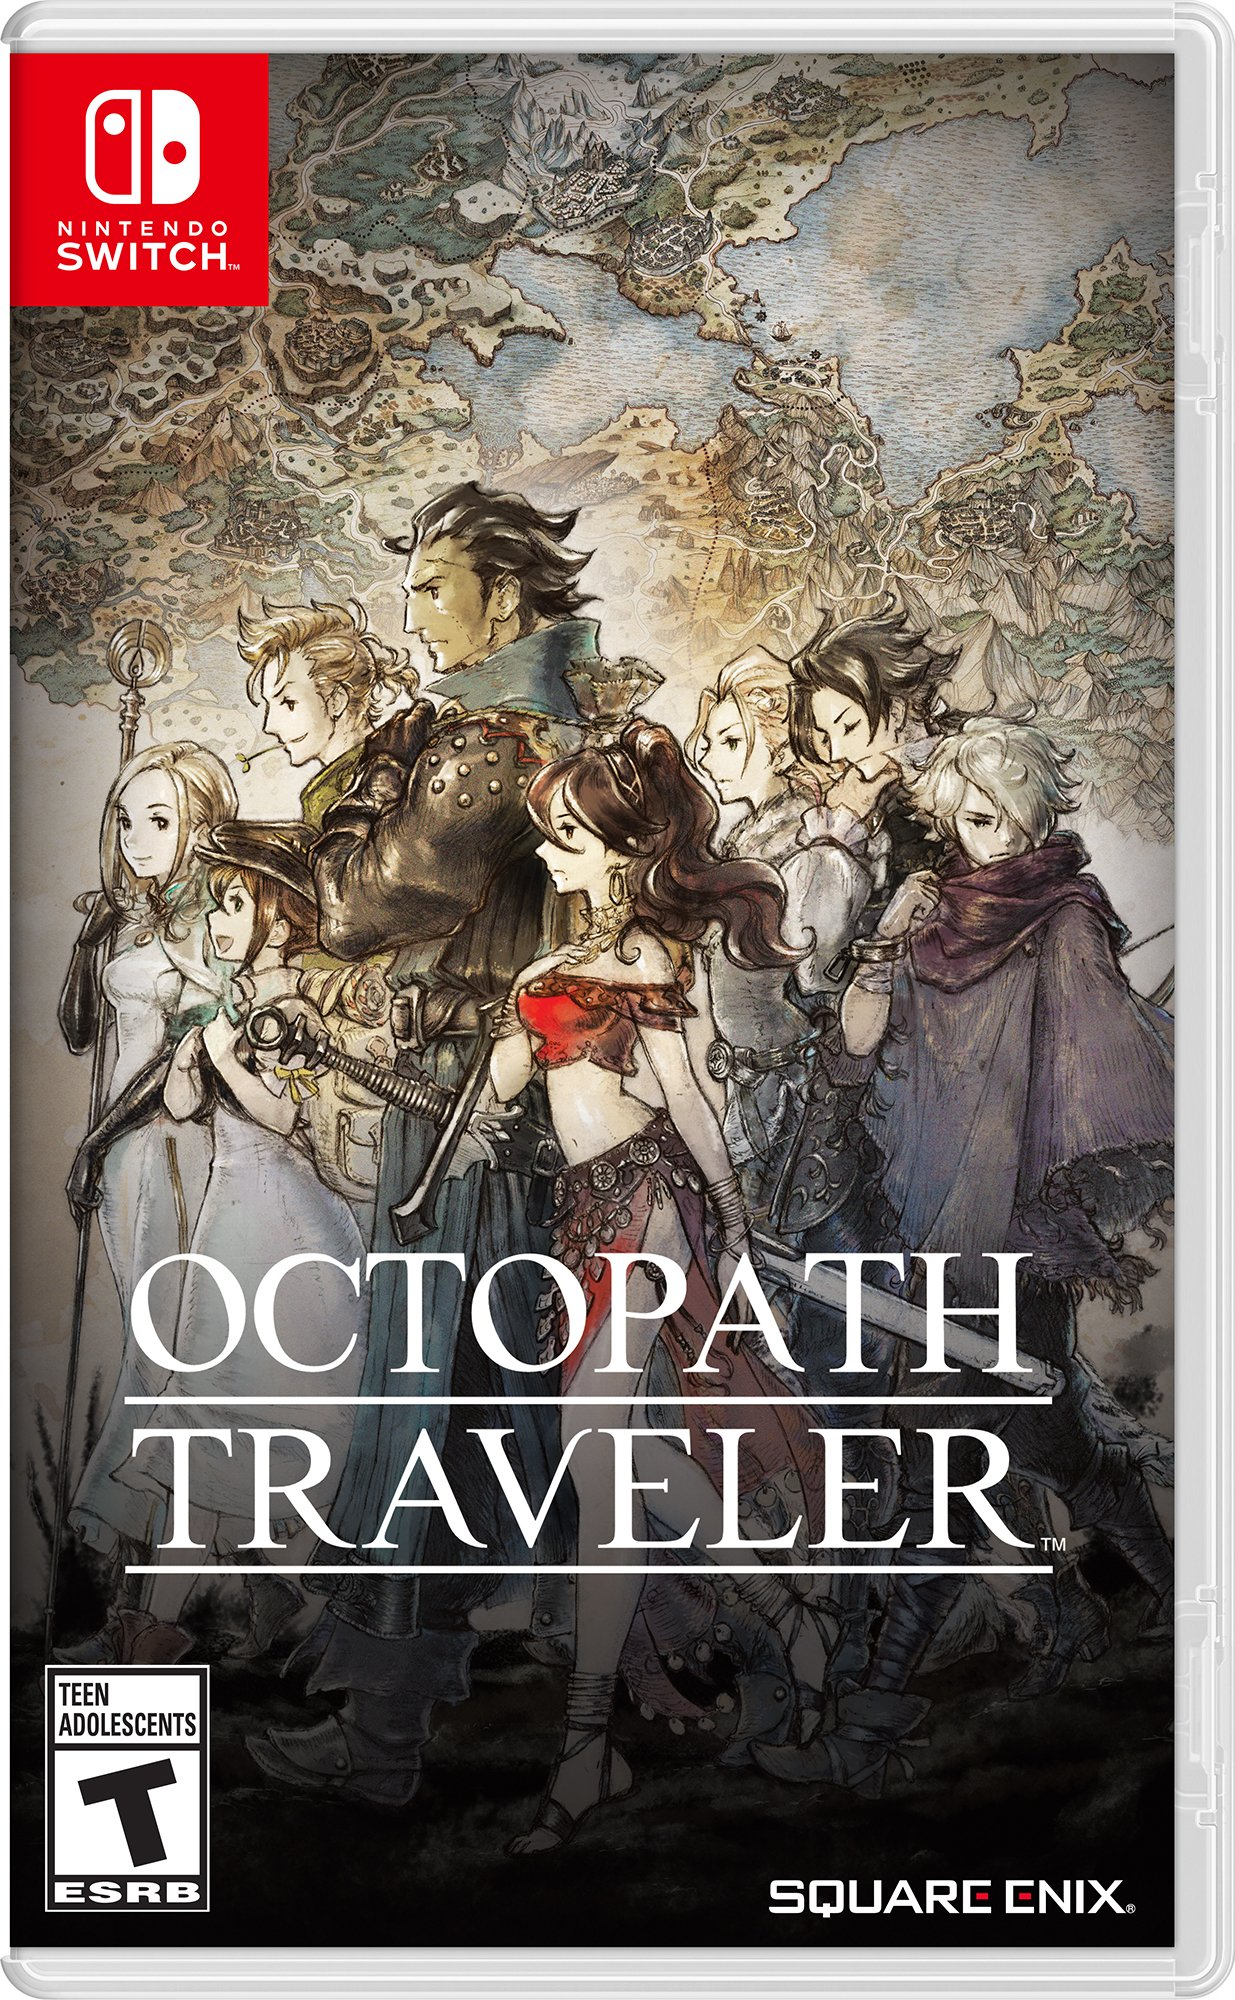 Buy Octopath Traveler Now!